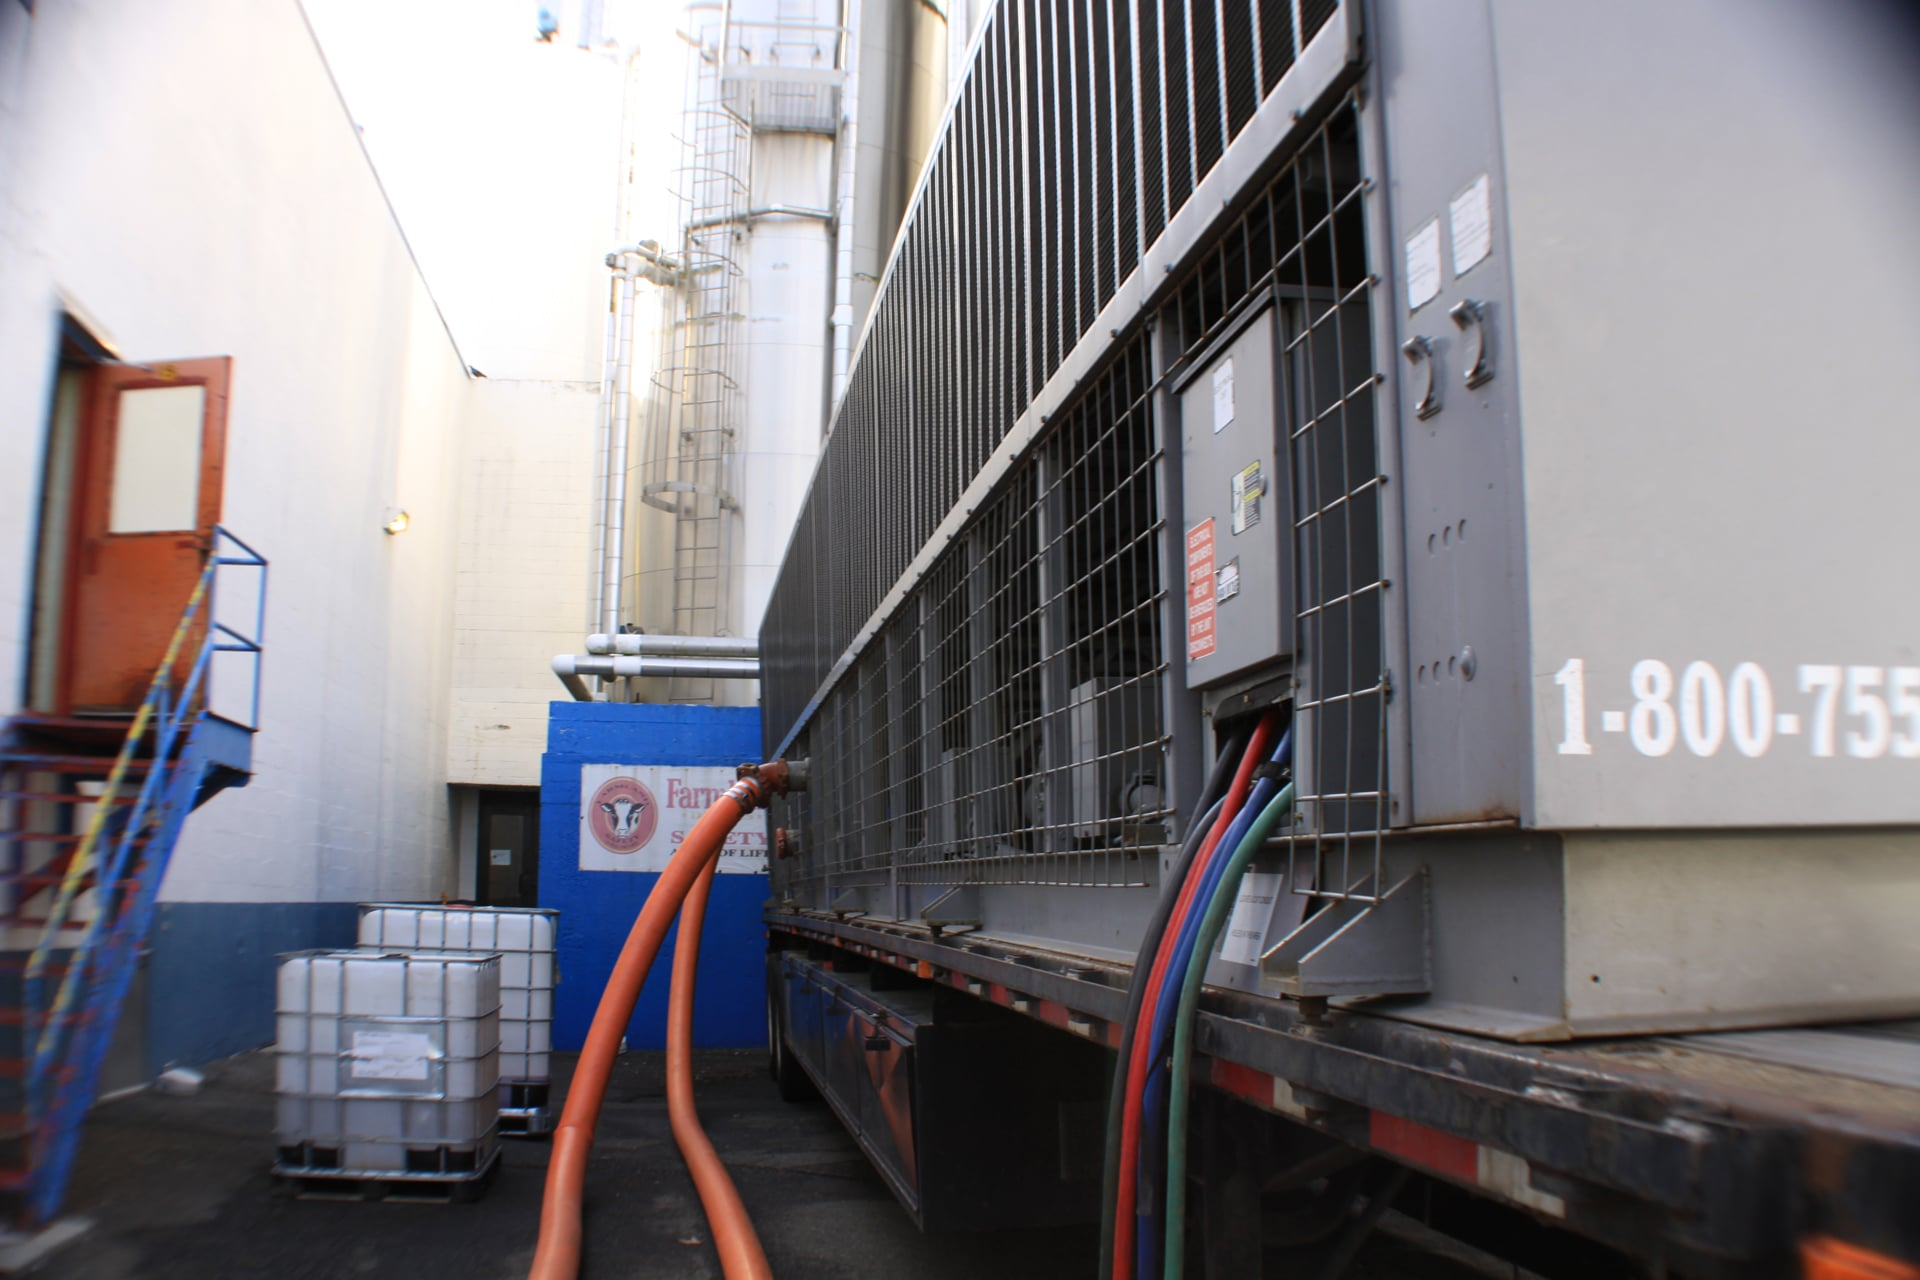 Temporary Chiller Brattleboro VT, Air Cooled Chiller Rental Brattleboro VT